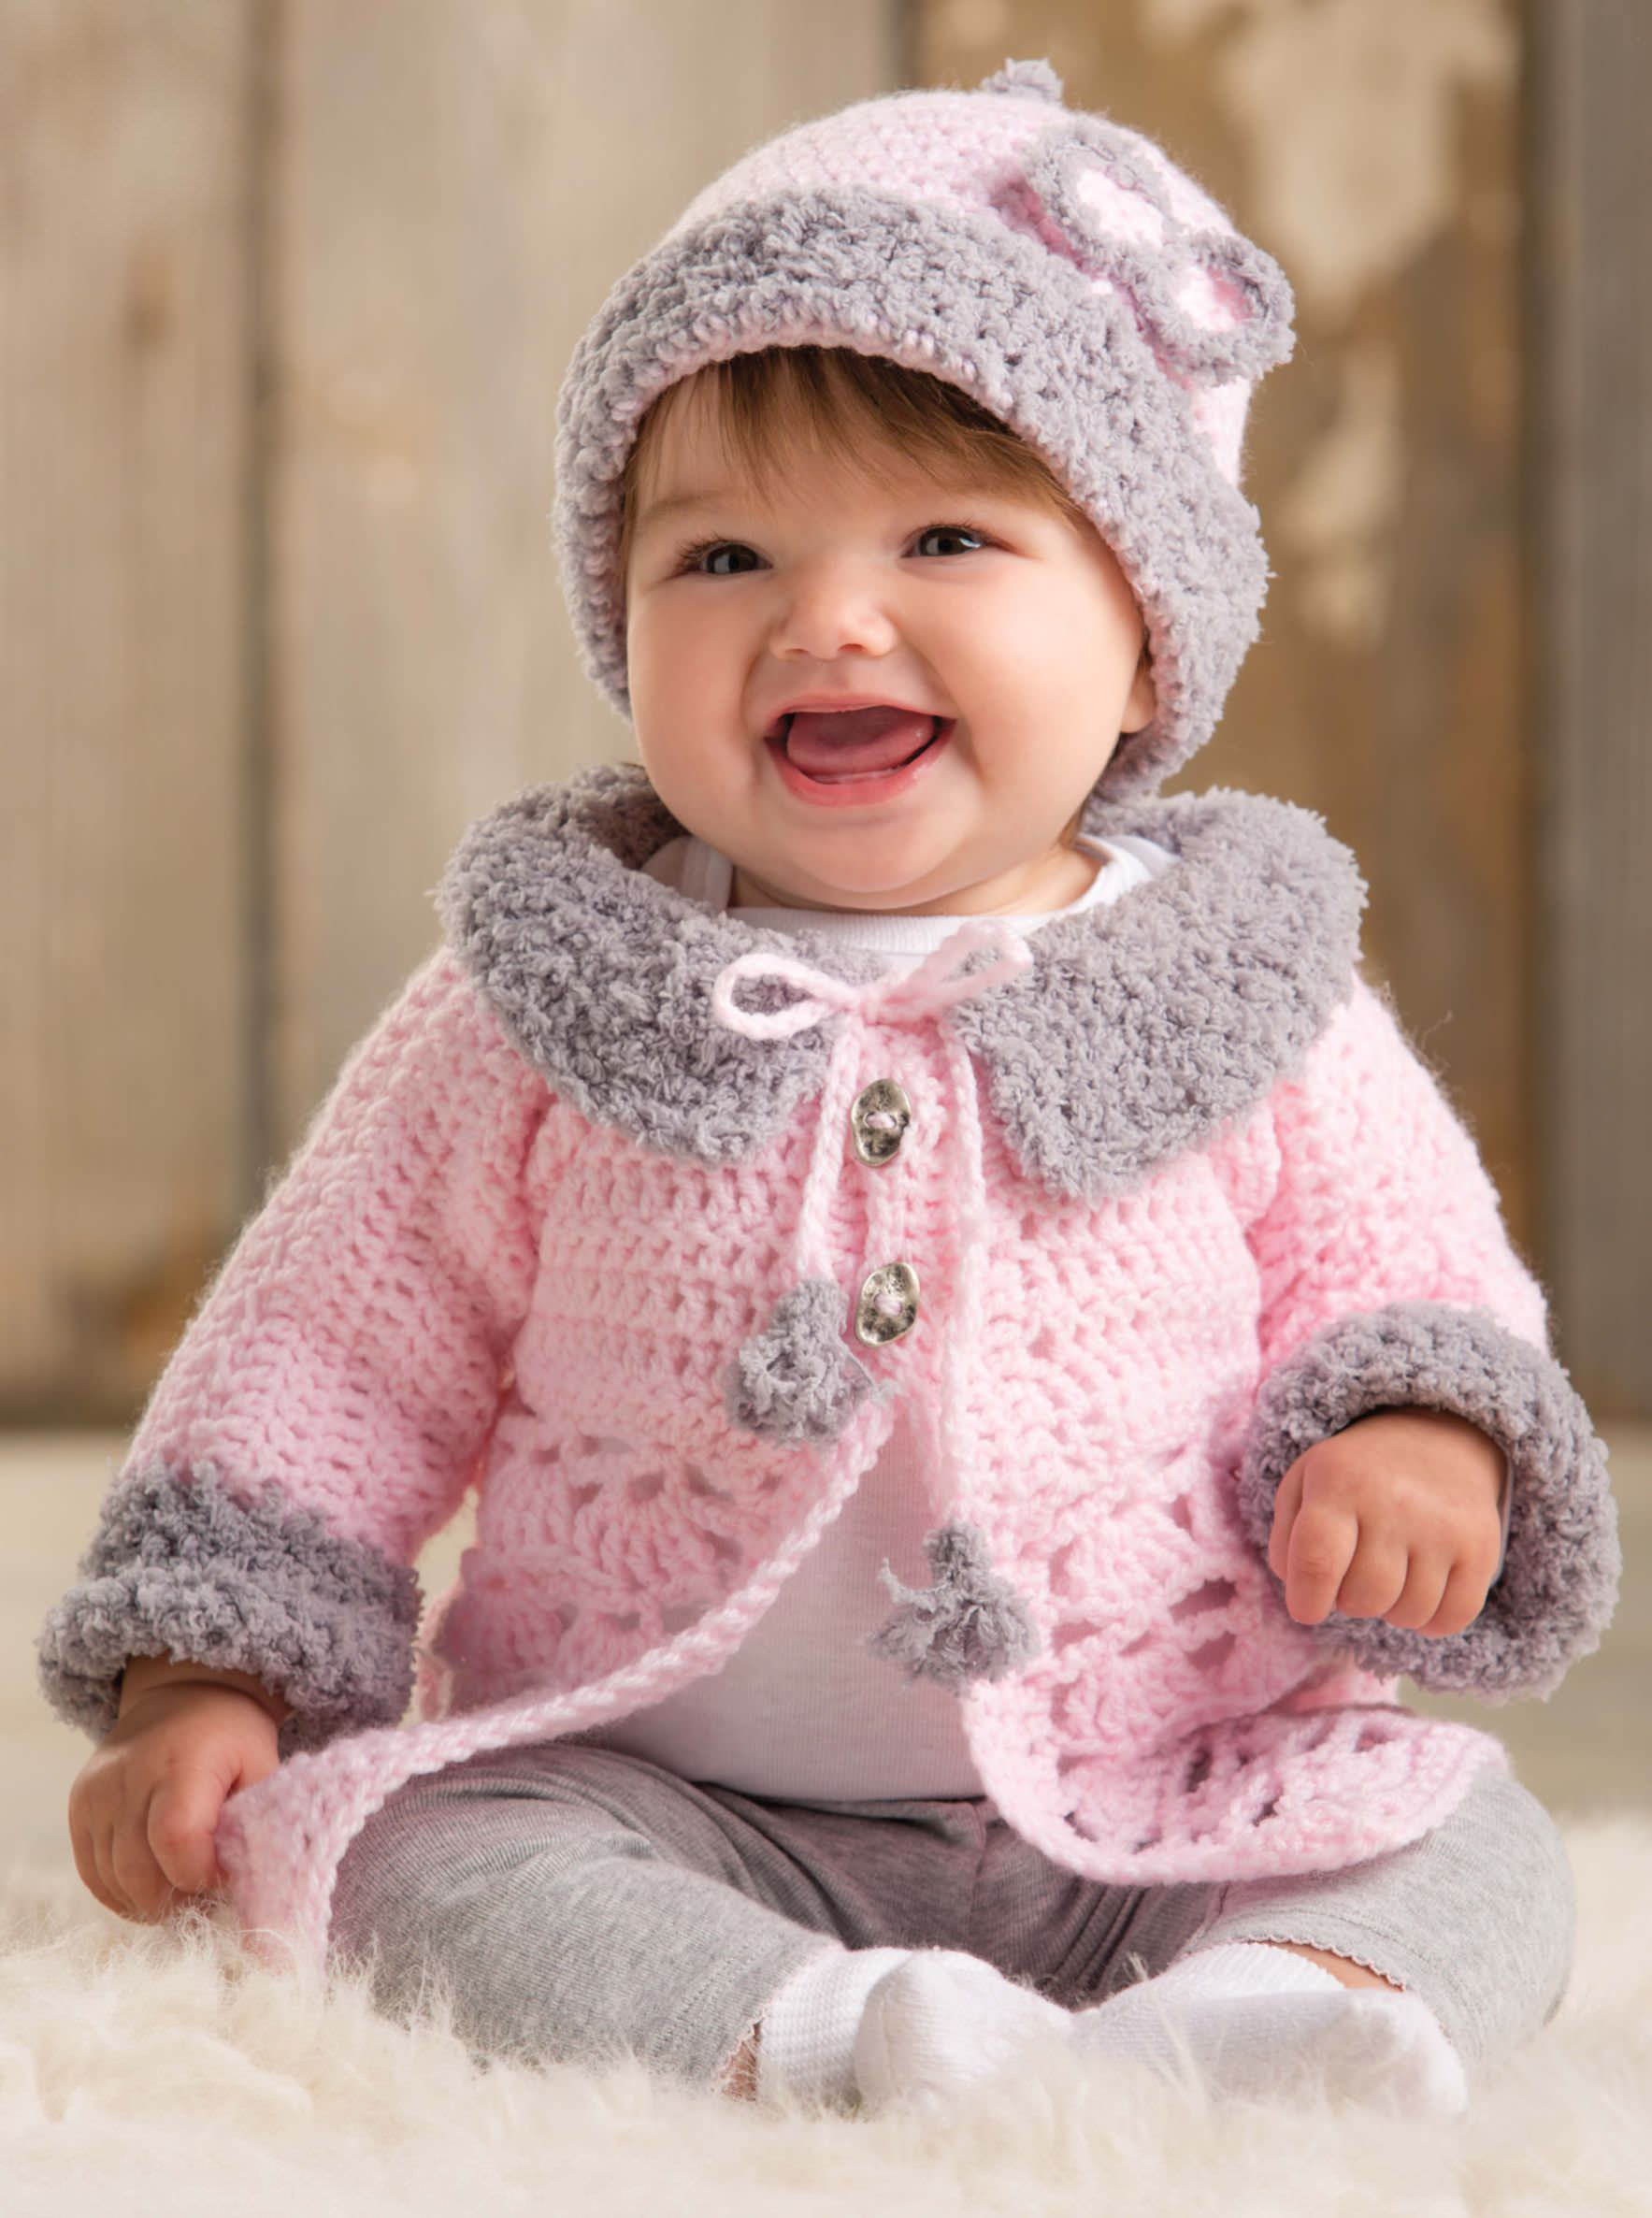 Baby boys' pullover sweaters Pullover baby boys' sweaters are a popular choice for daily wear. They come in several different colors and baby-friendly patterns, including teddy bears, bunnies, and .